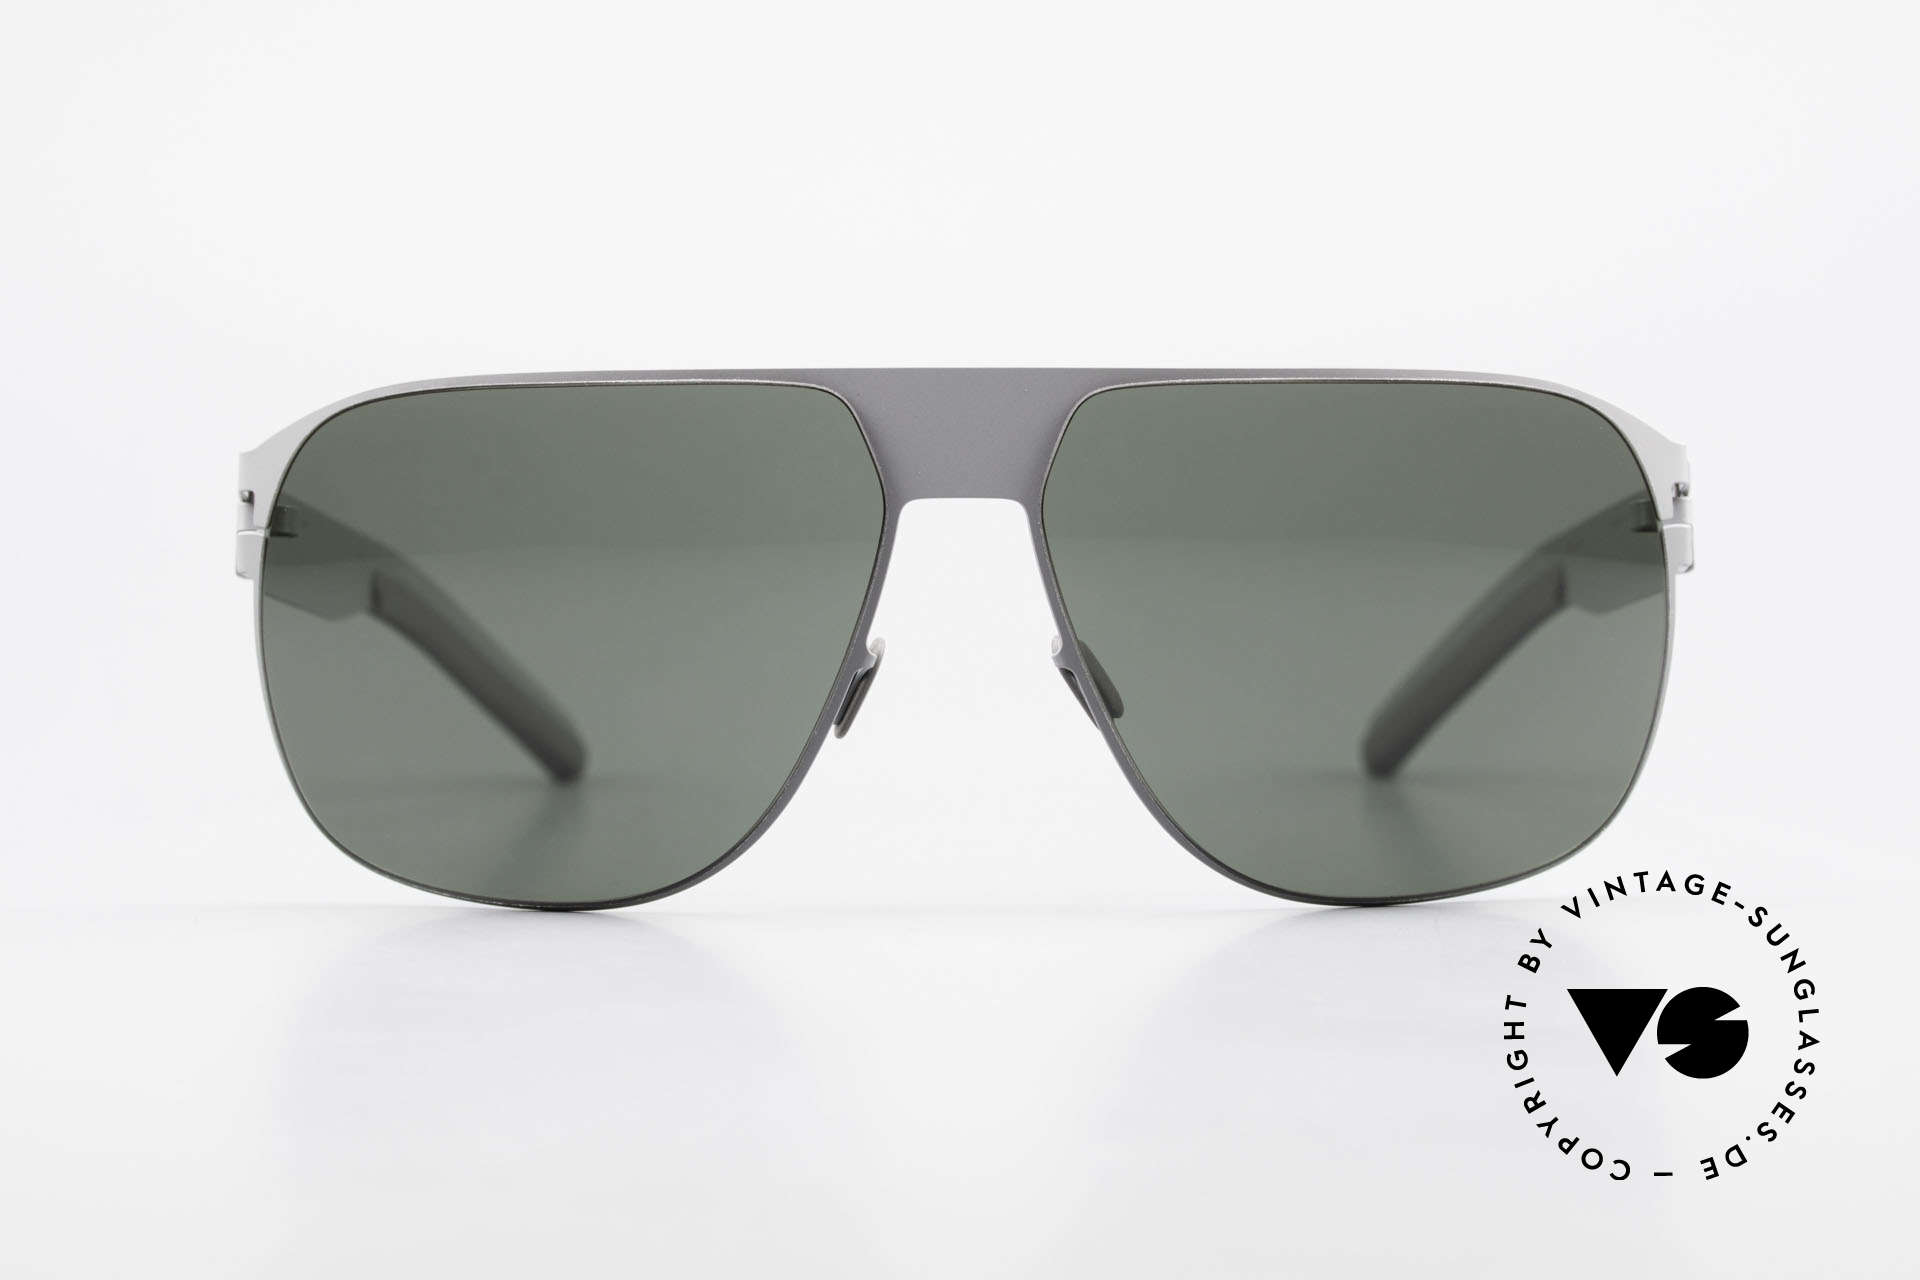 Mykita Tim Mykita Shades Vintage 2011's, MYKITA: the youngest brand in our vintage collection, Made for Men